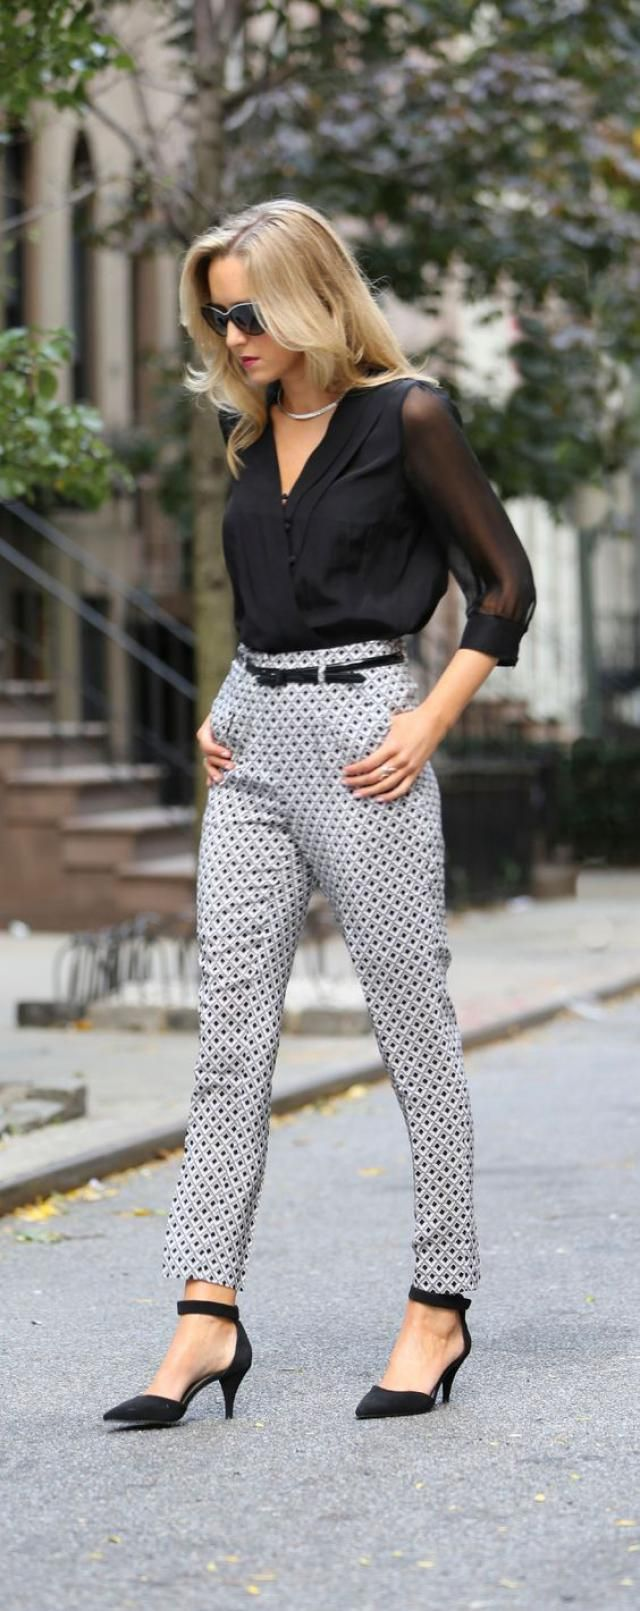 Belted  Pants And Shirt  Black